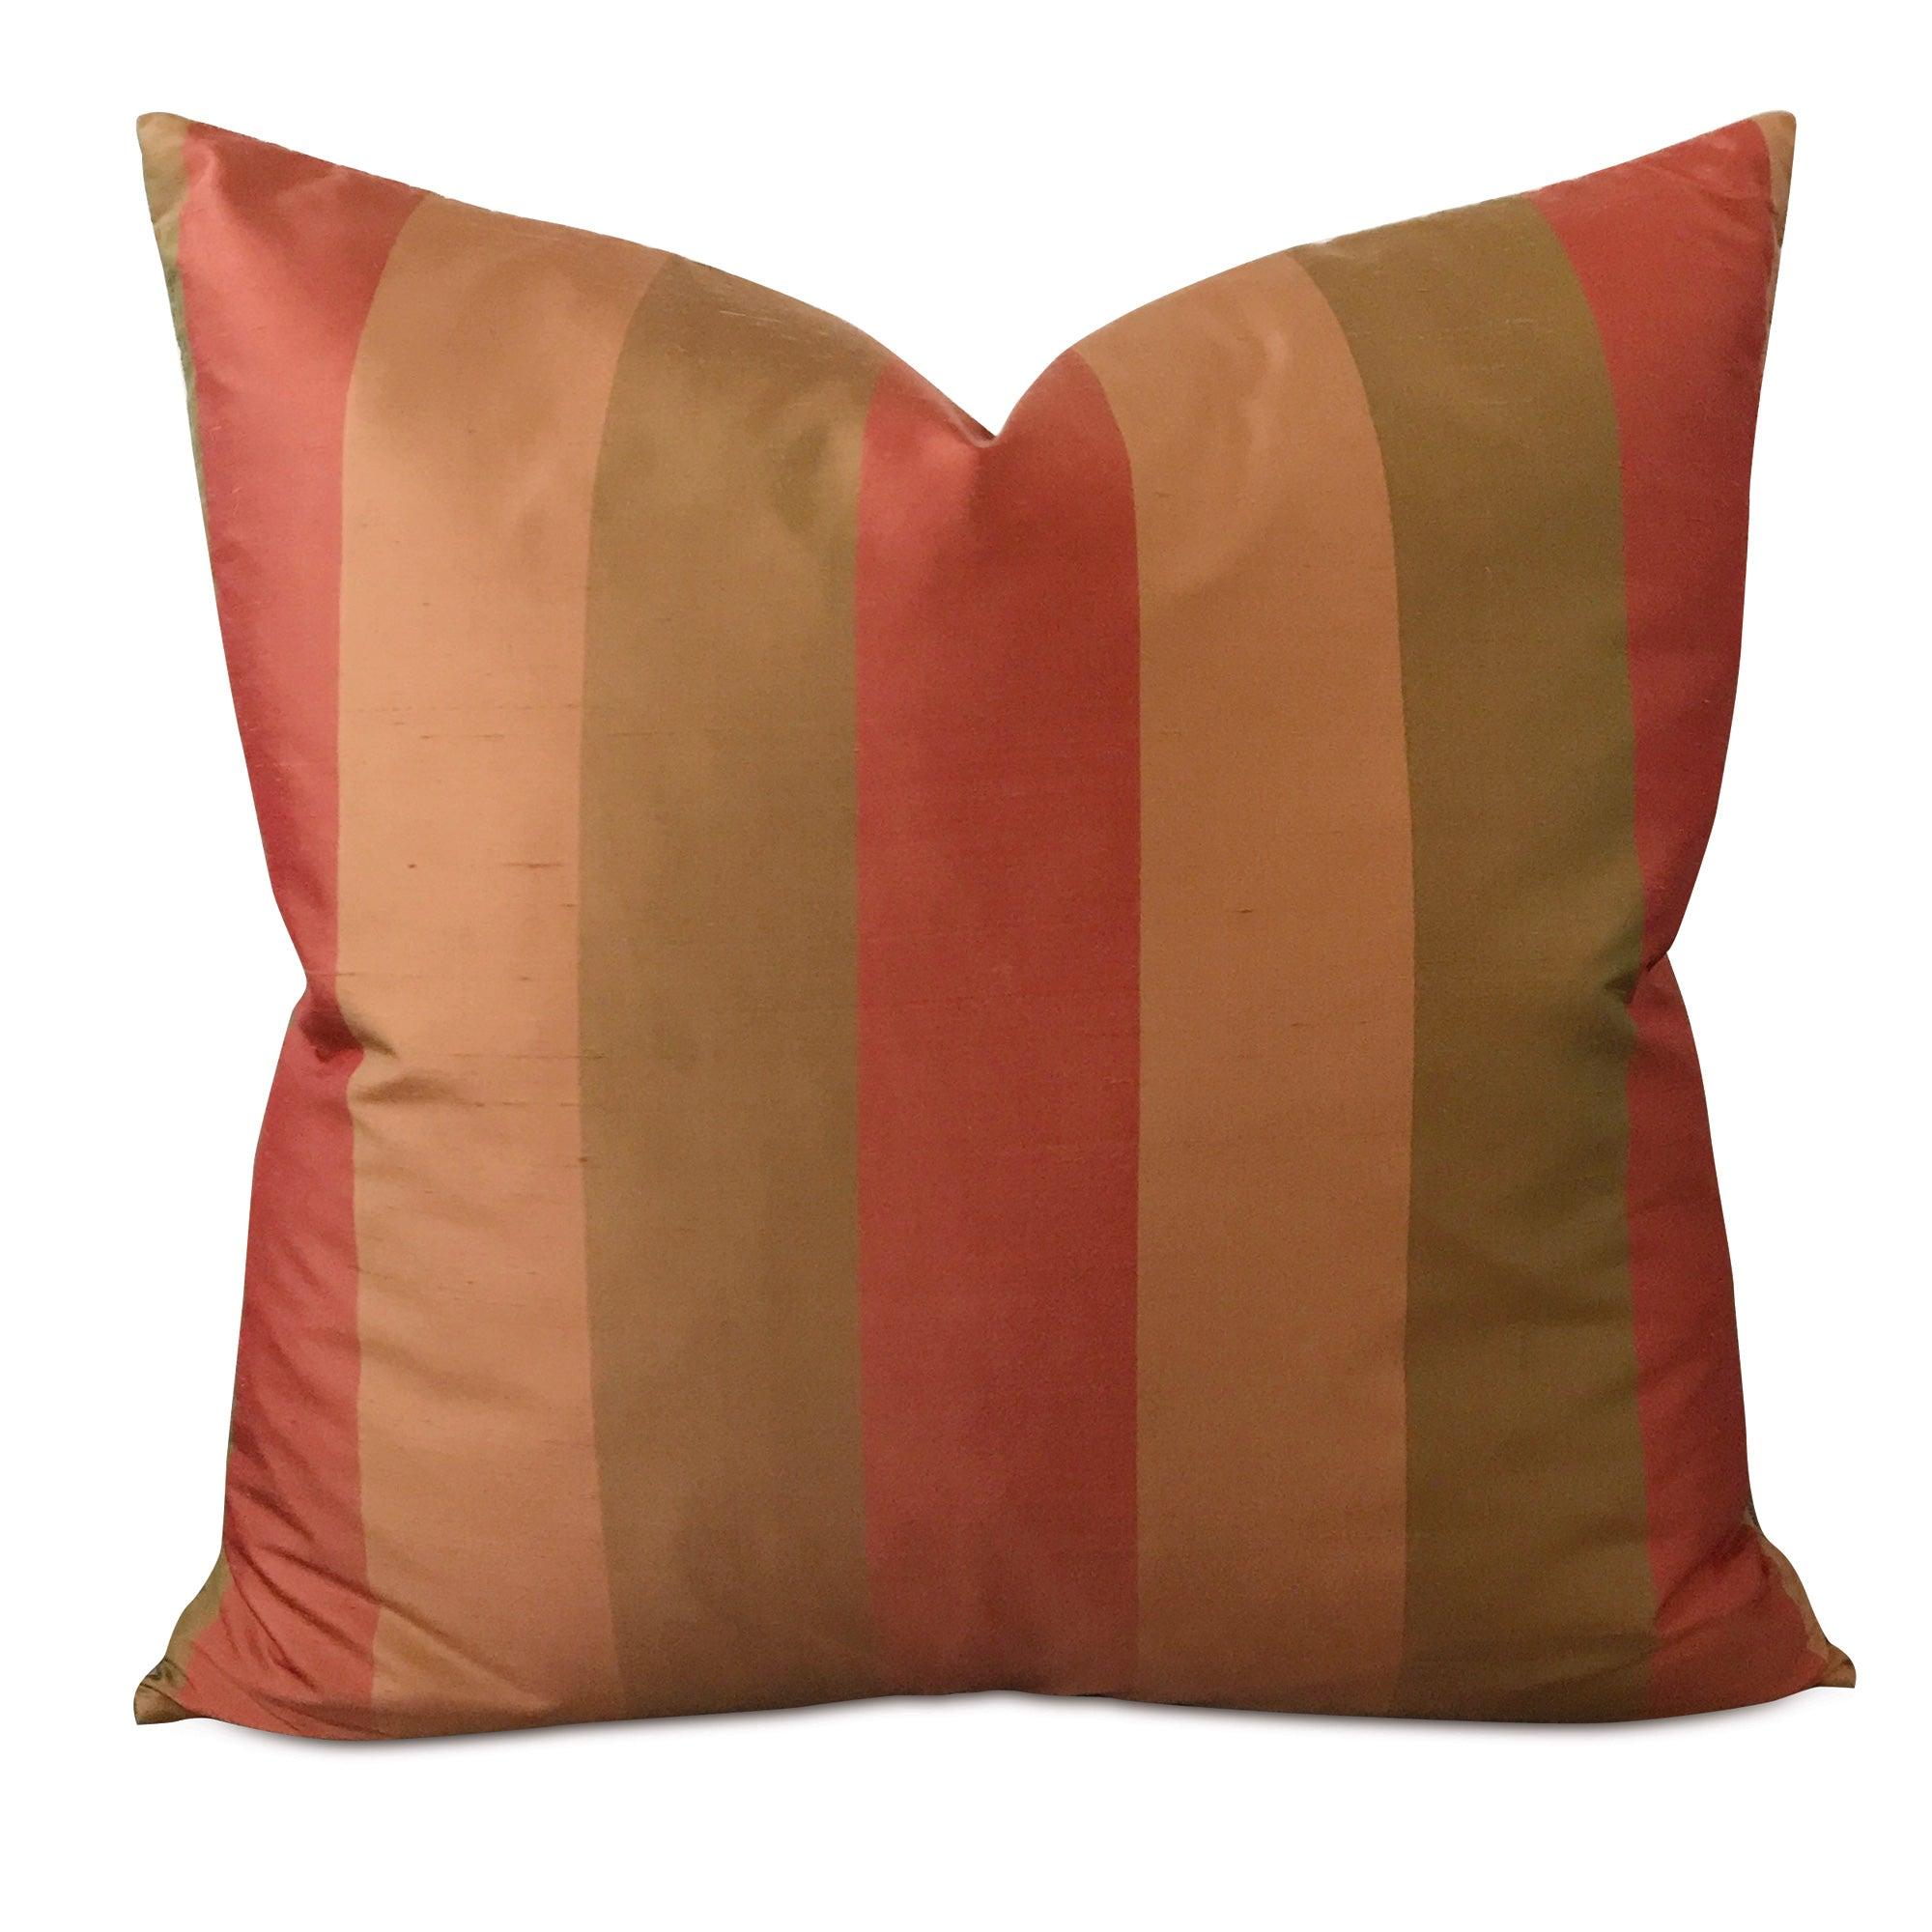 peach pillows angeloferrer com brown colored pale decorative teal throw decor and